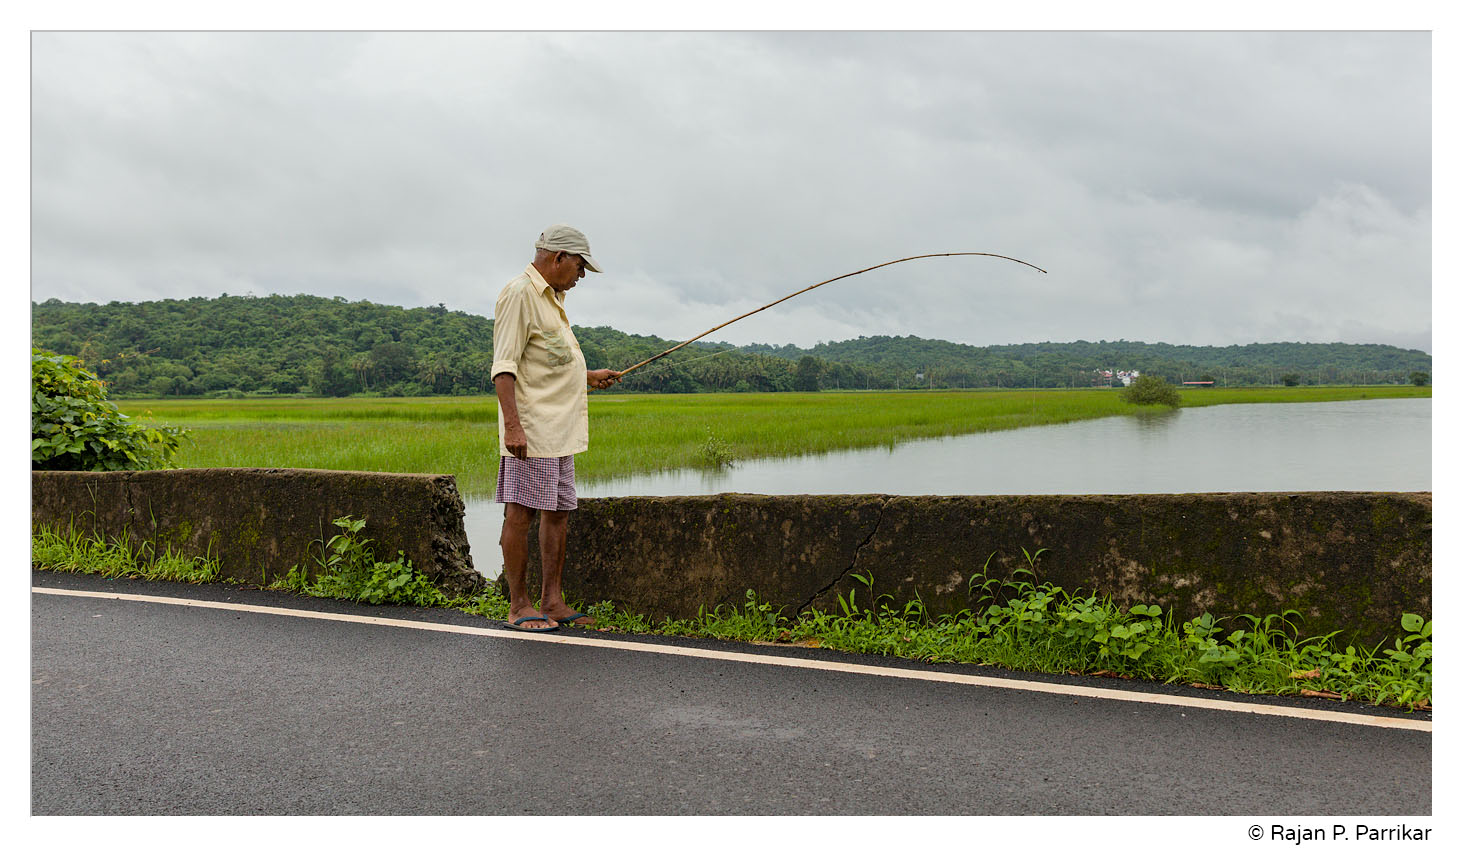 Chandramohan Naik, fishing in Paithona, Goa